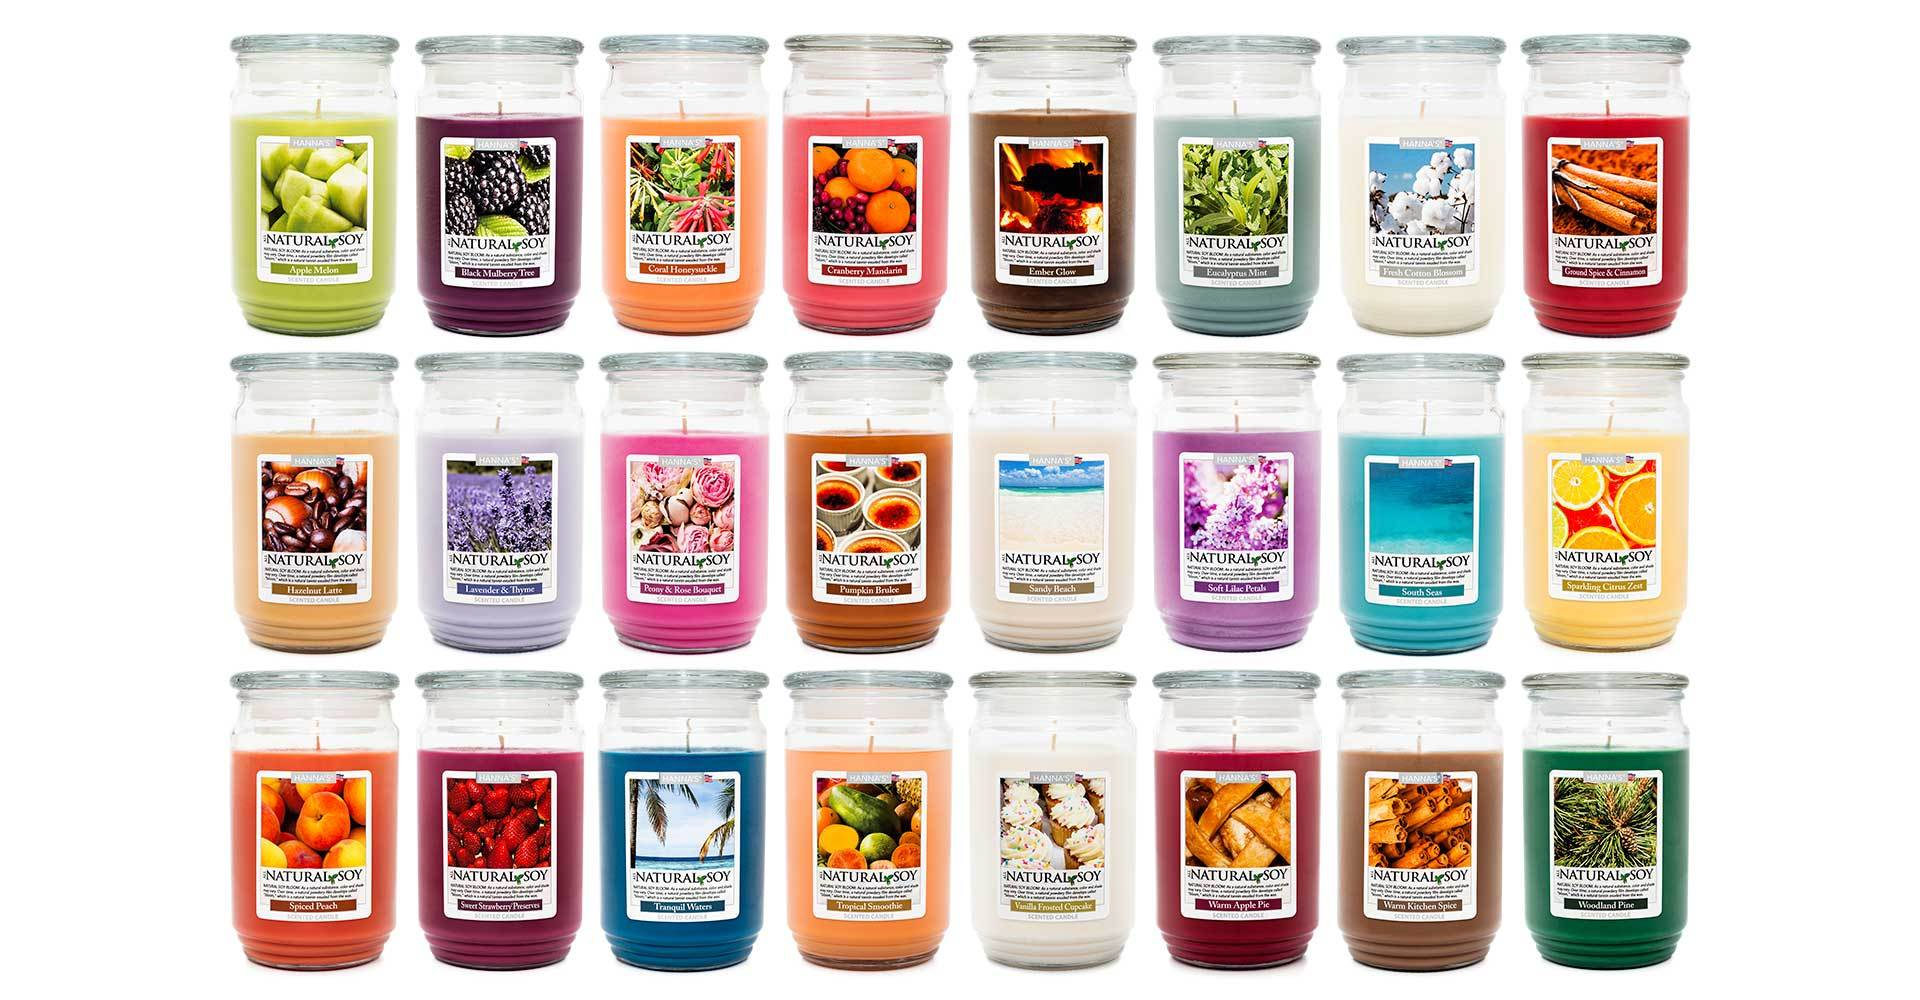 Natural Soy Spiced Peach Scented Soy Candle - Candlemart.com